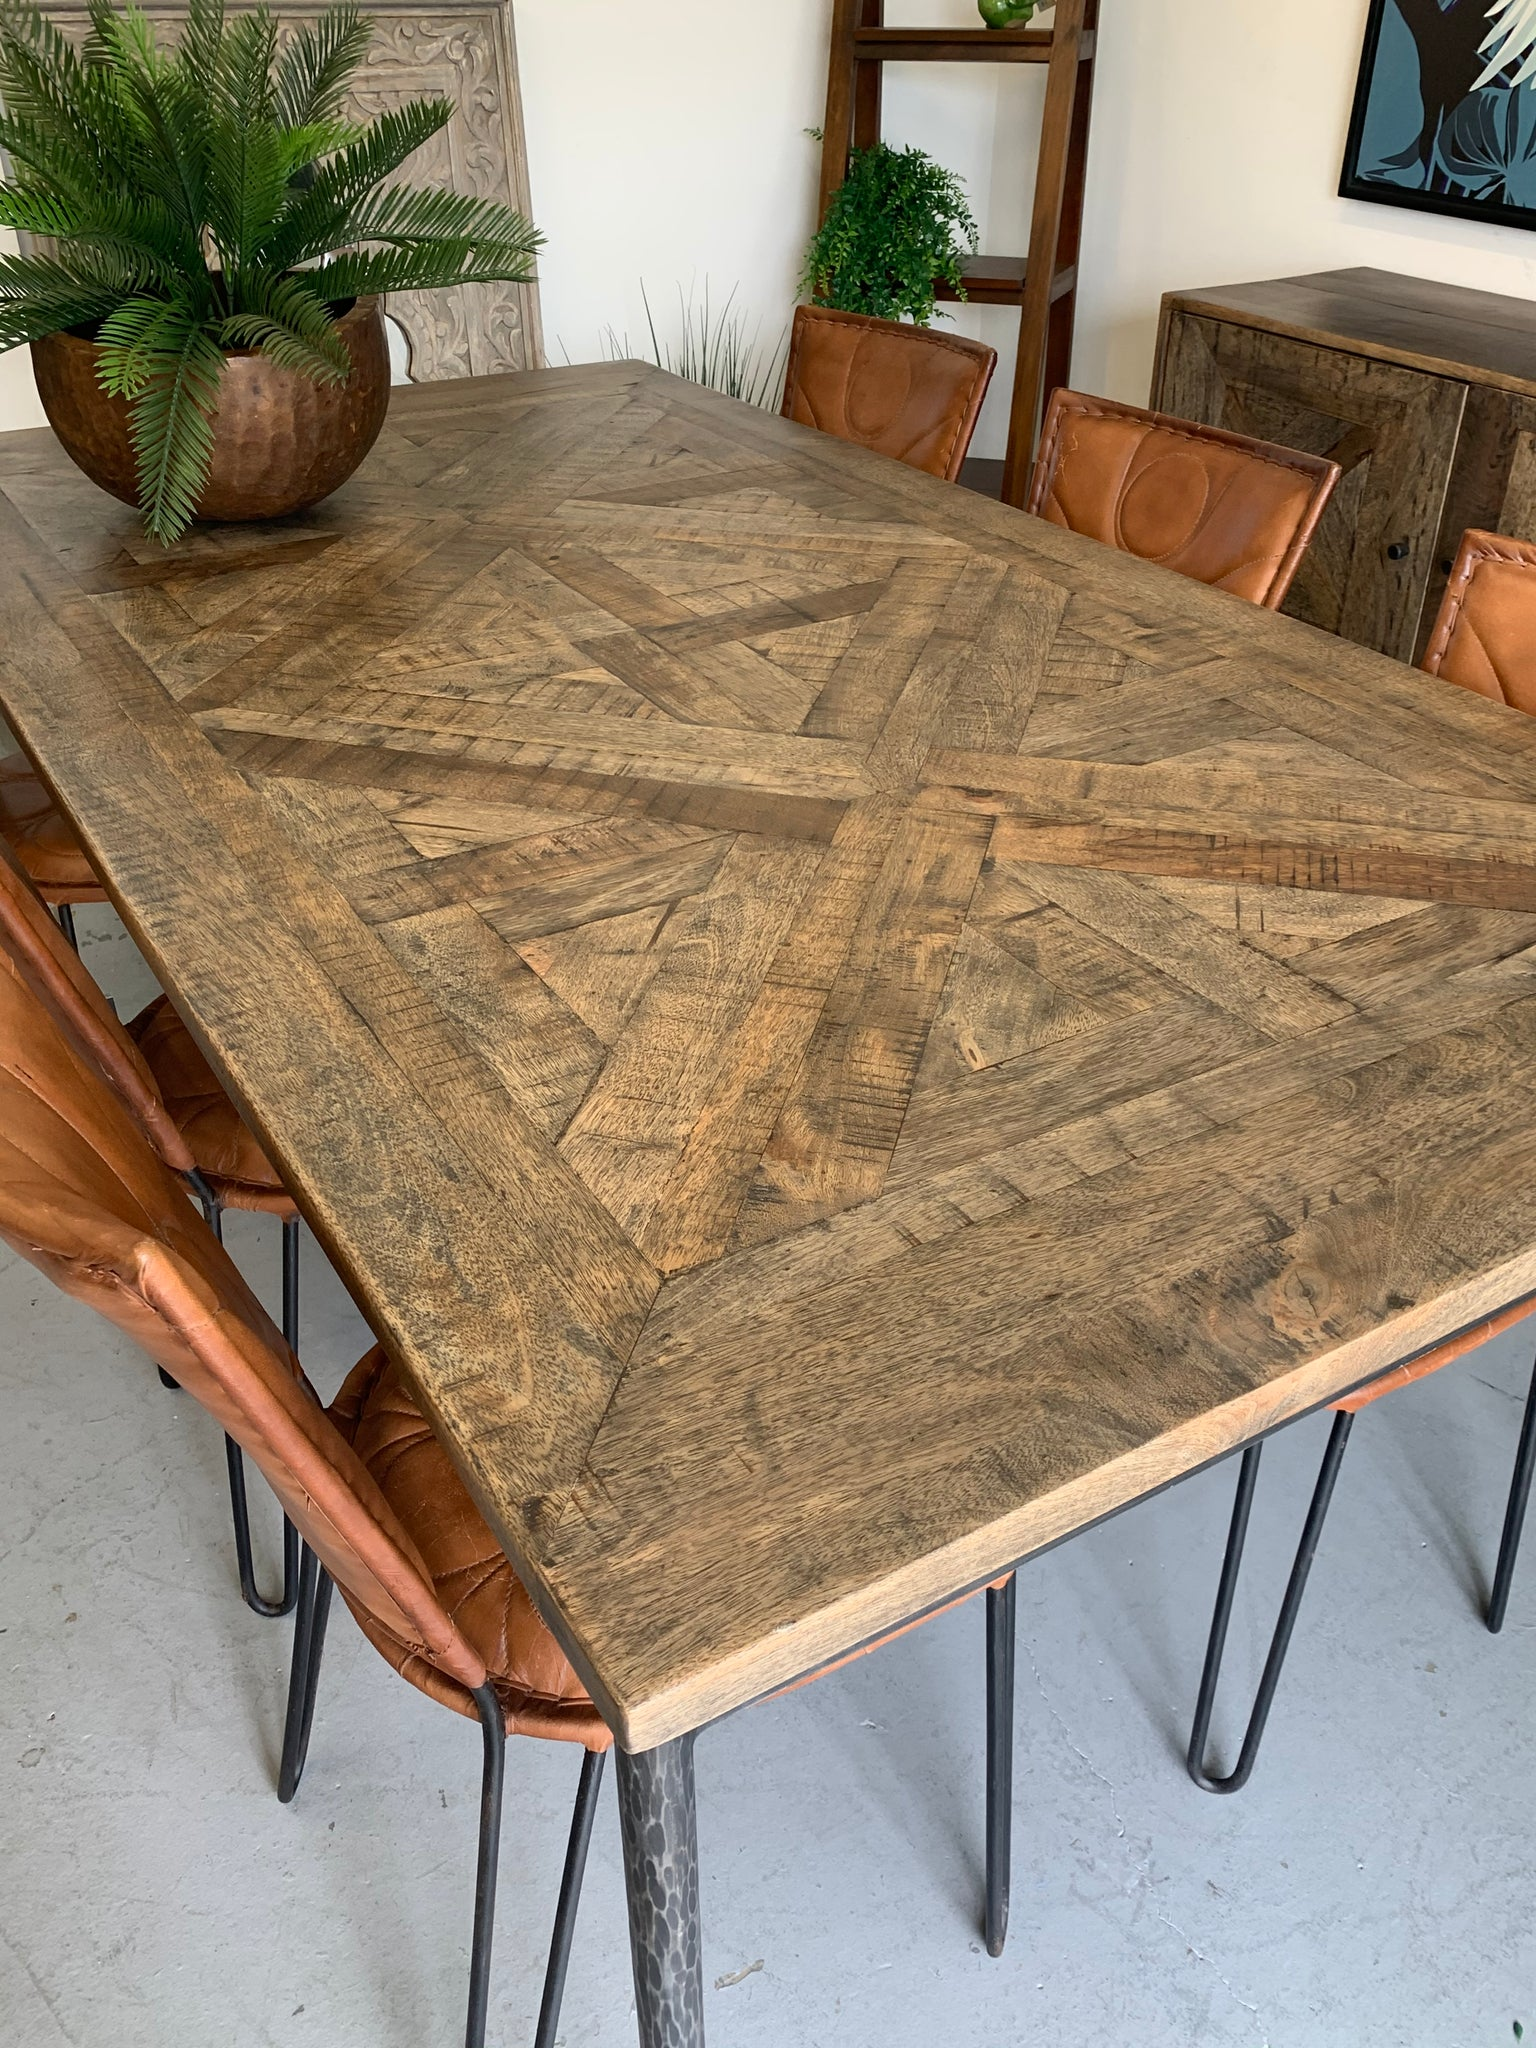 Sisco dining table